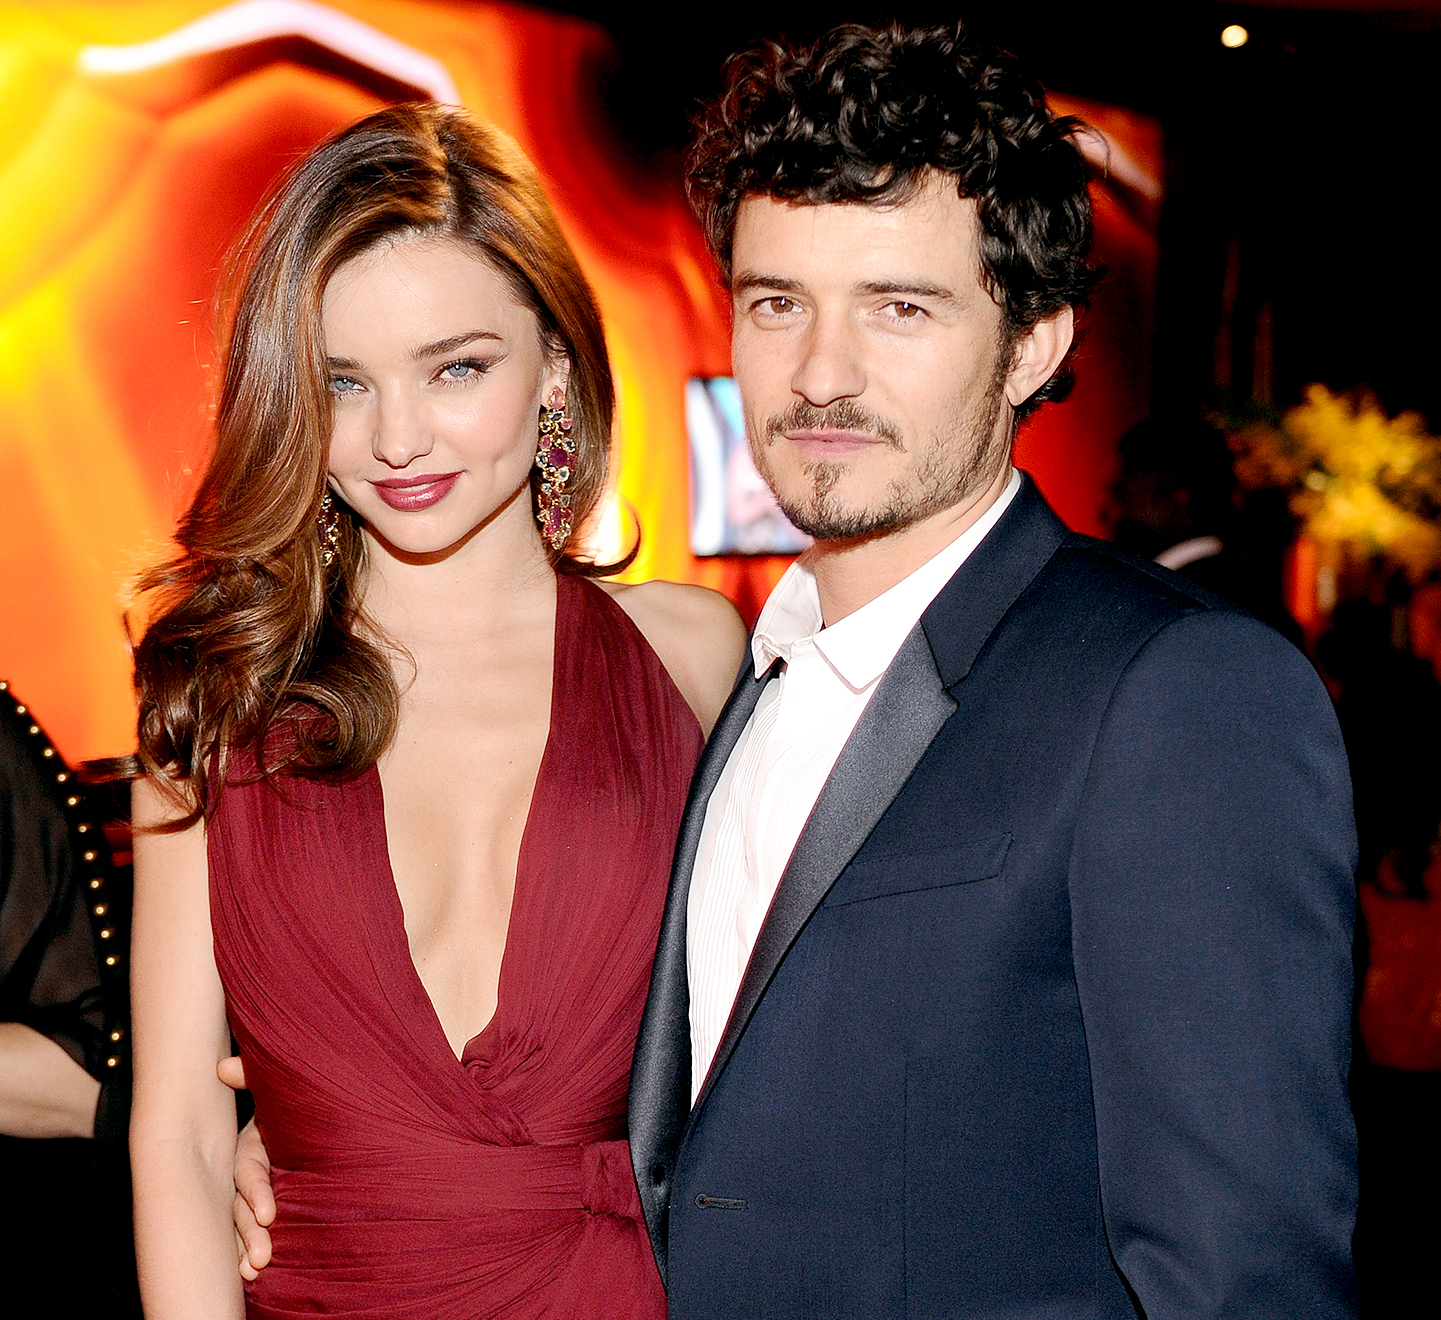 celebrity breakups Miranda Kerr and Orlando Bloom